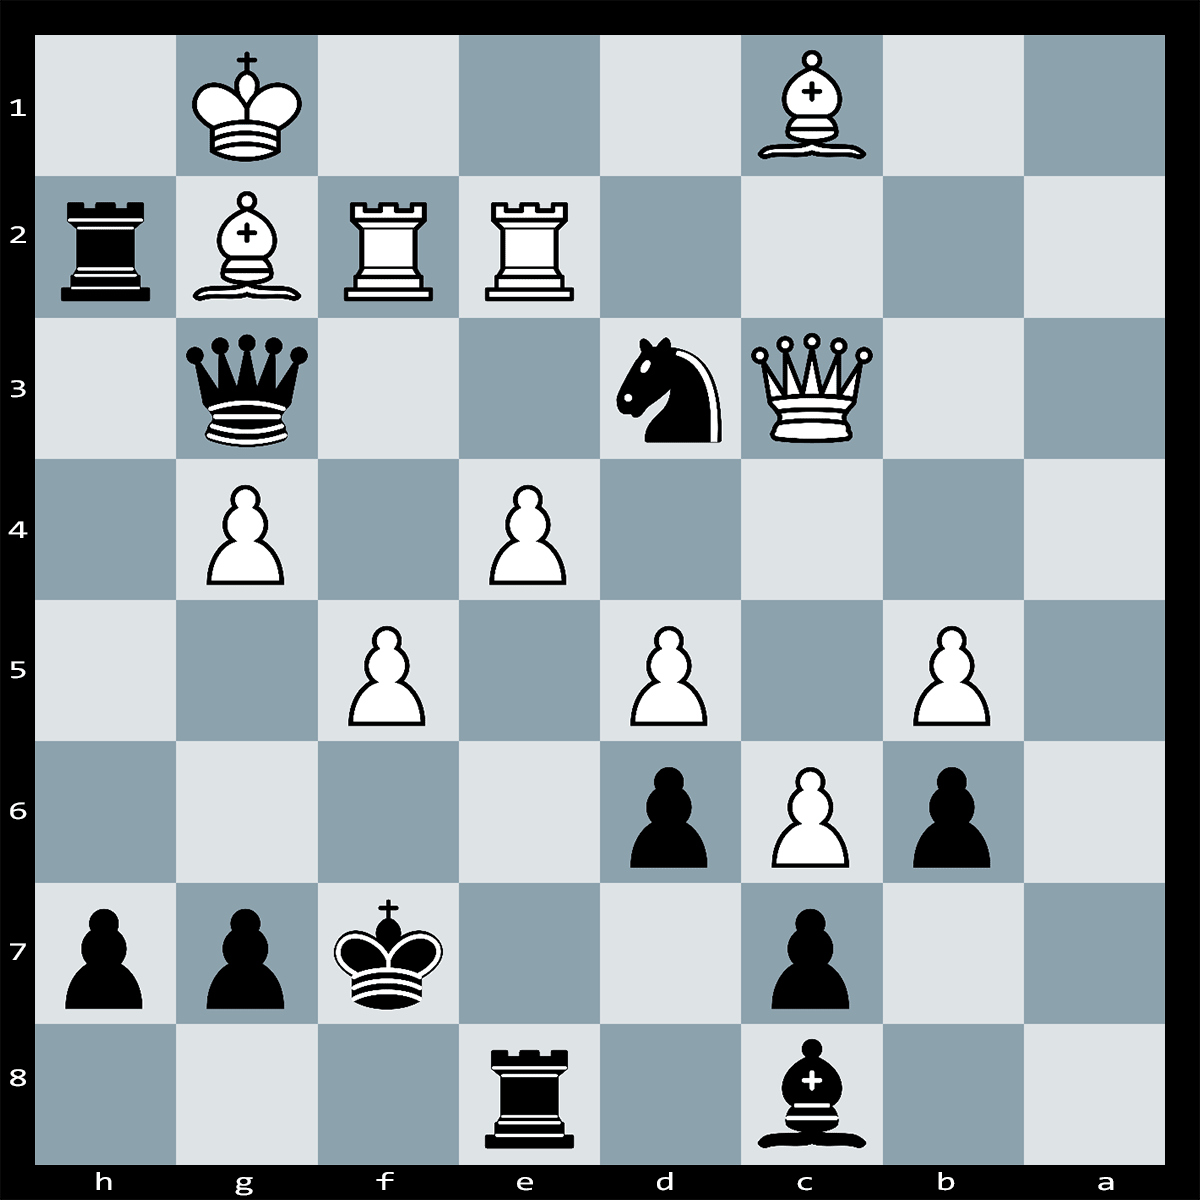 Black to Play and Win, Find the Best Move | Chess Puzzle #236